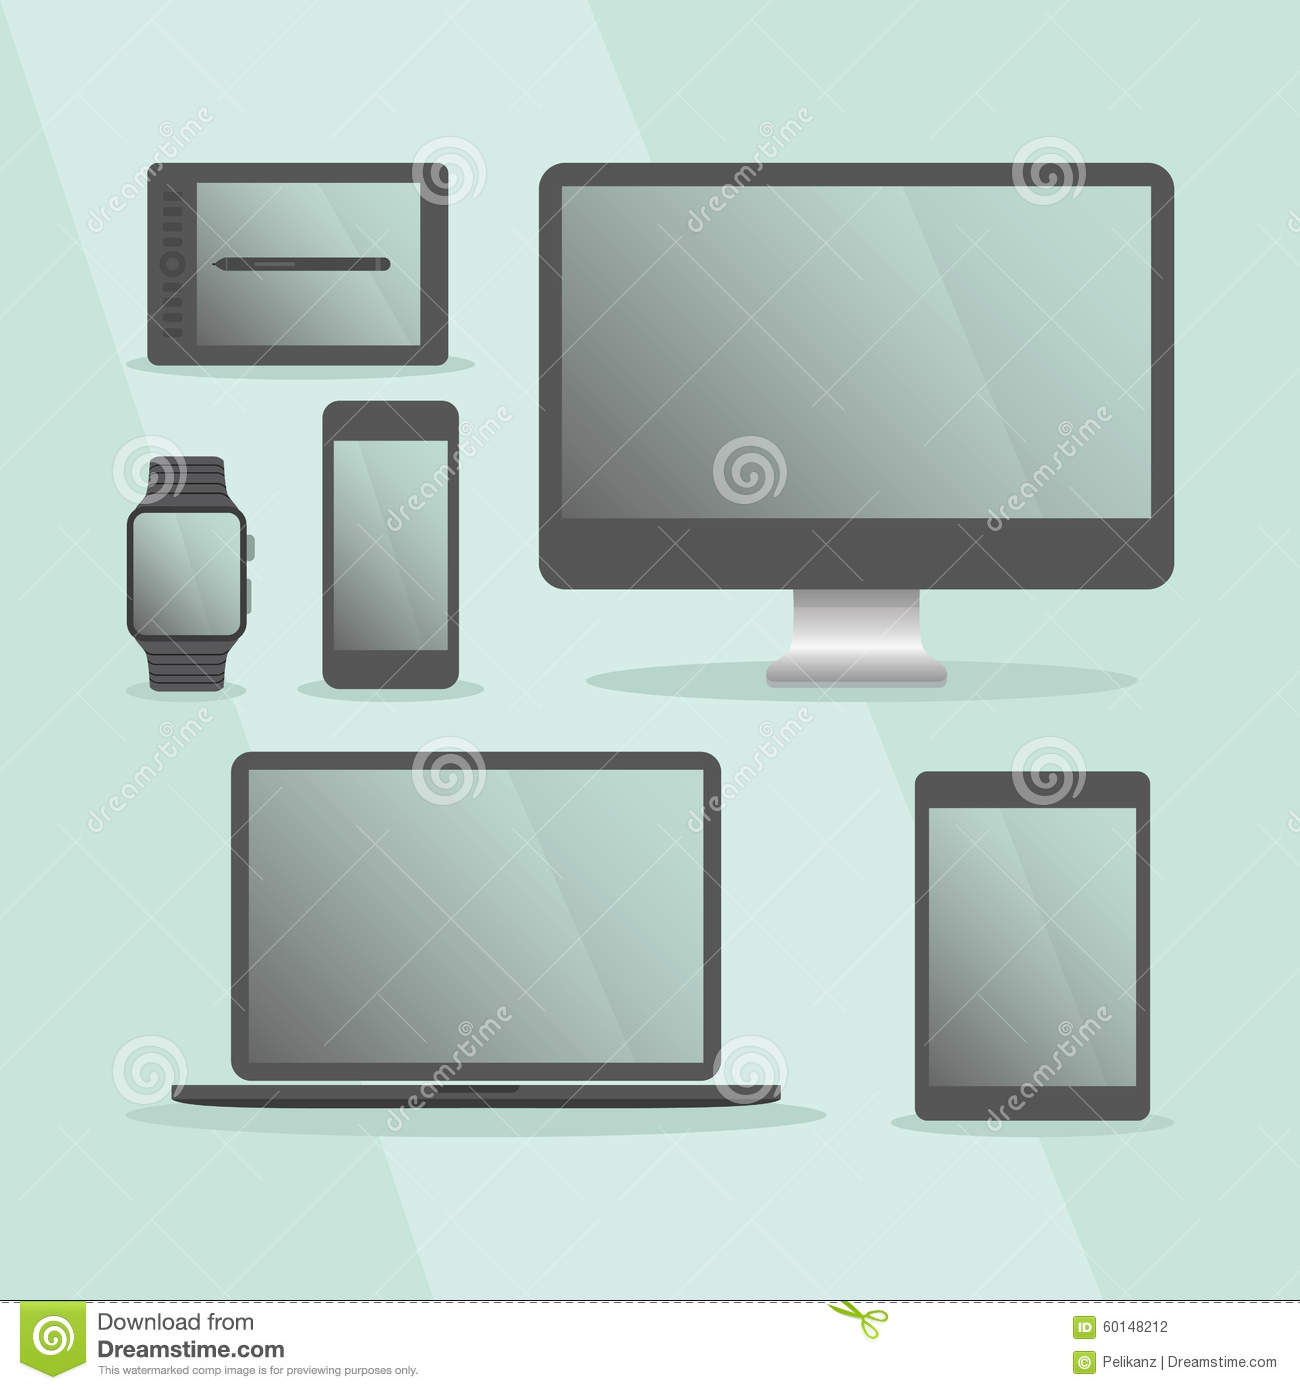 How to download pictures from computer to digital photo frame Commercial organisation The Dictionary of Sydney